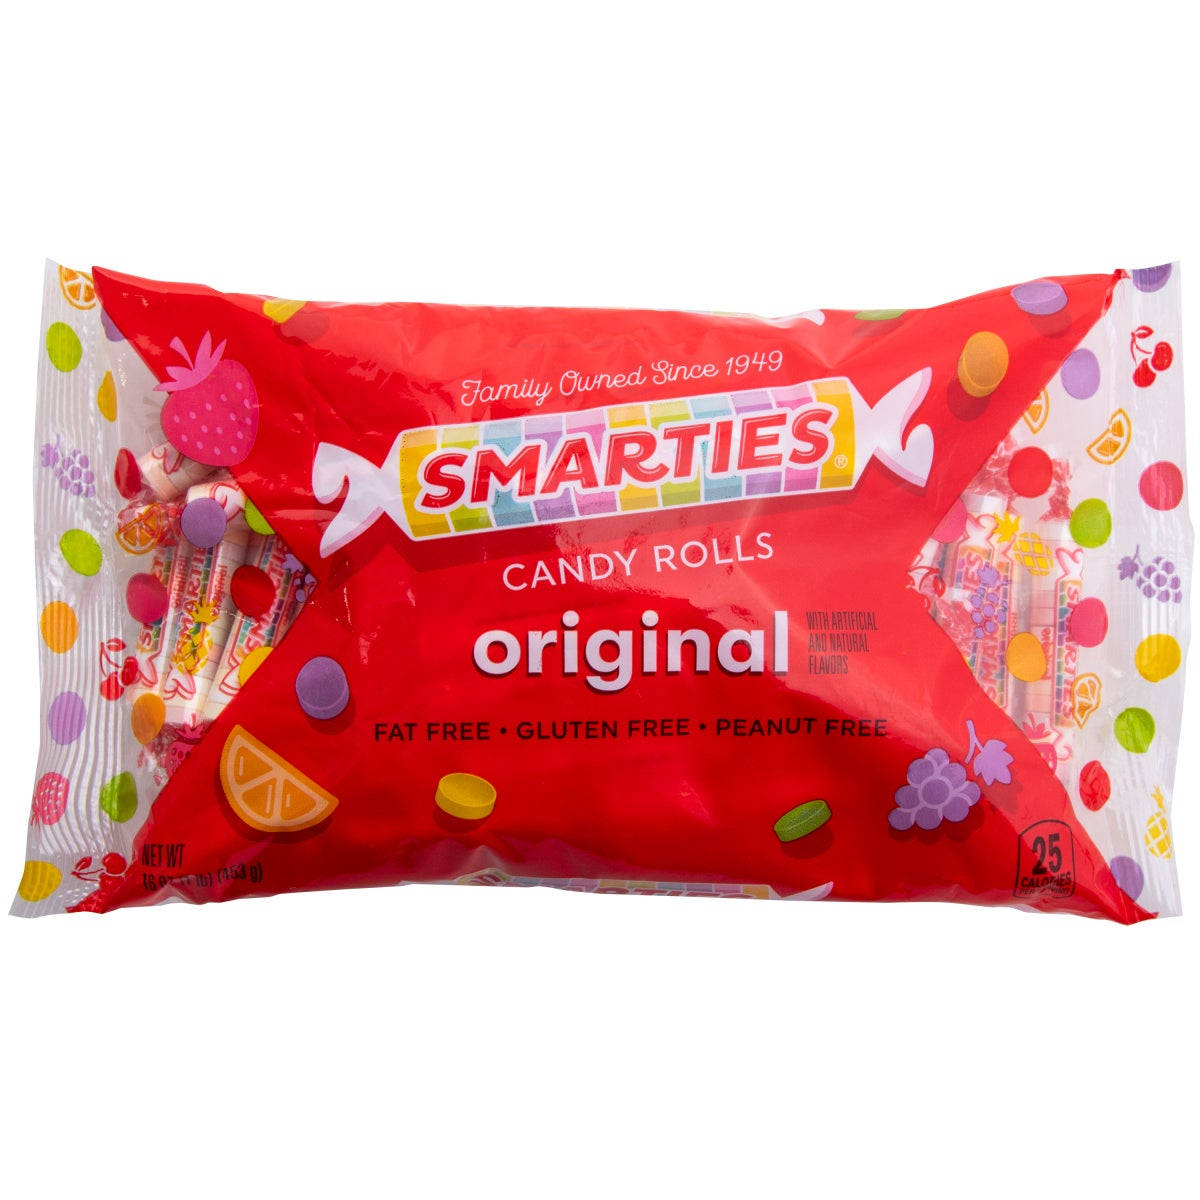 Smarties Candy Rolls, Original, 16oz